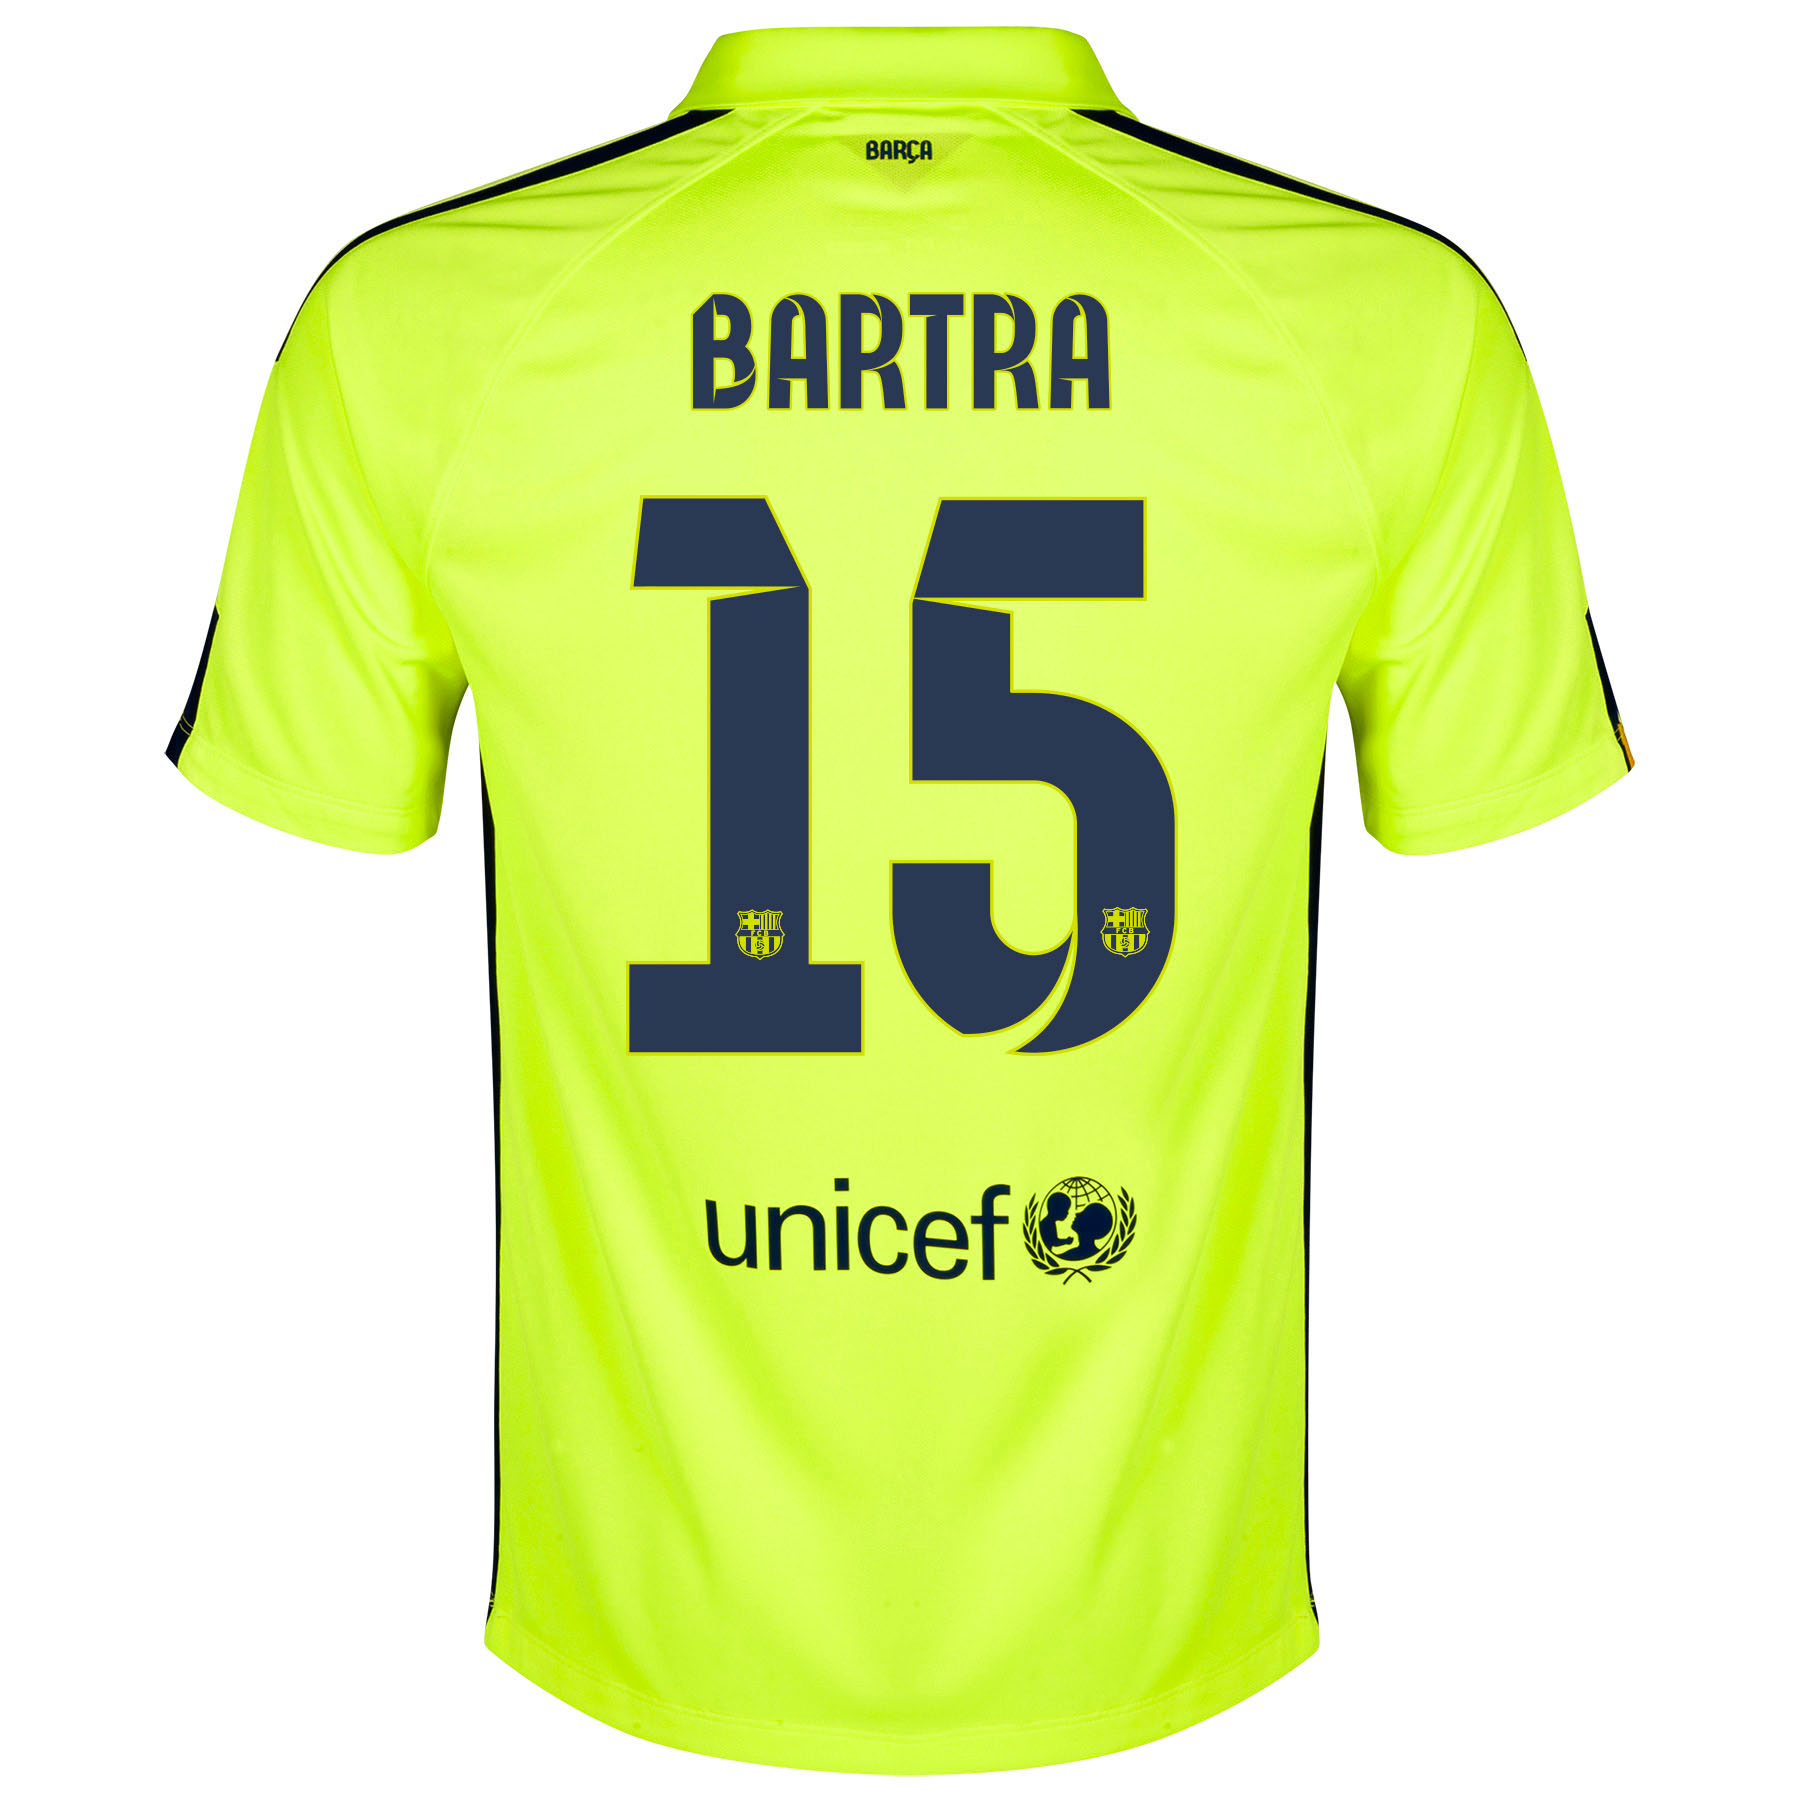 Barcelona Third Shirt 2014/15 Yellow with Bartra 15 printing